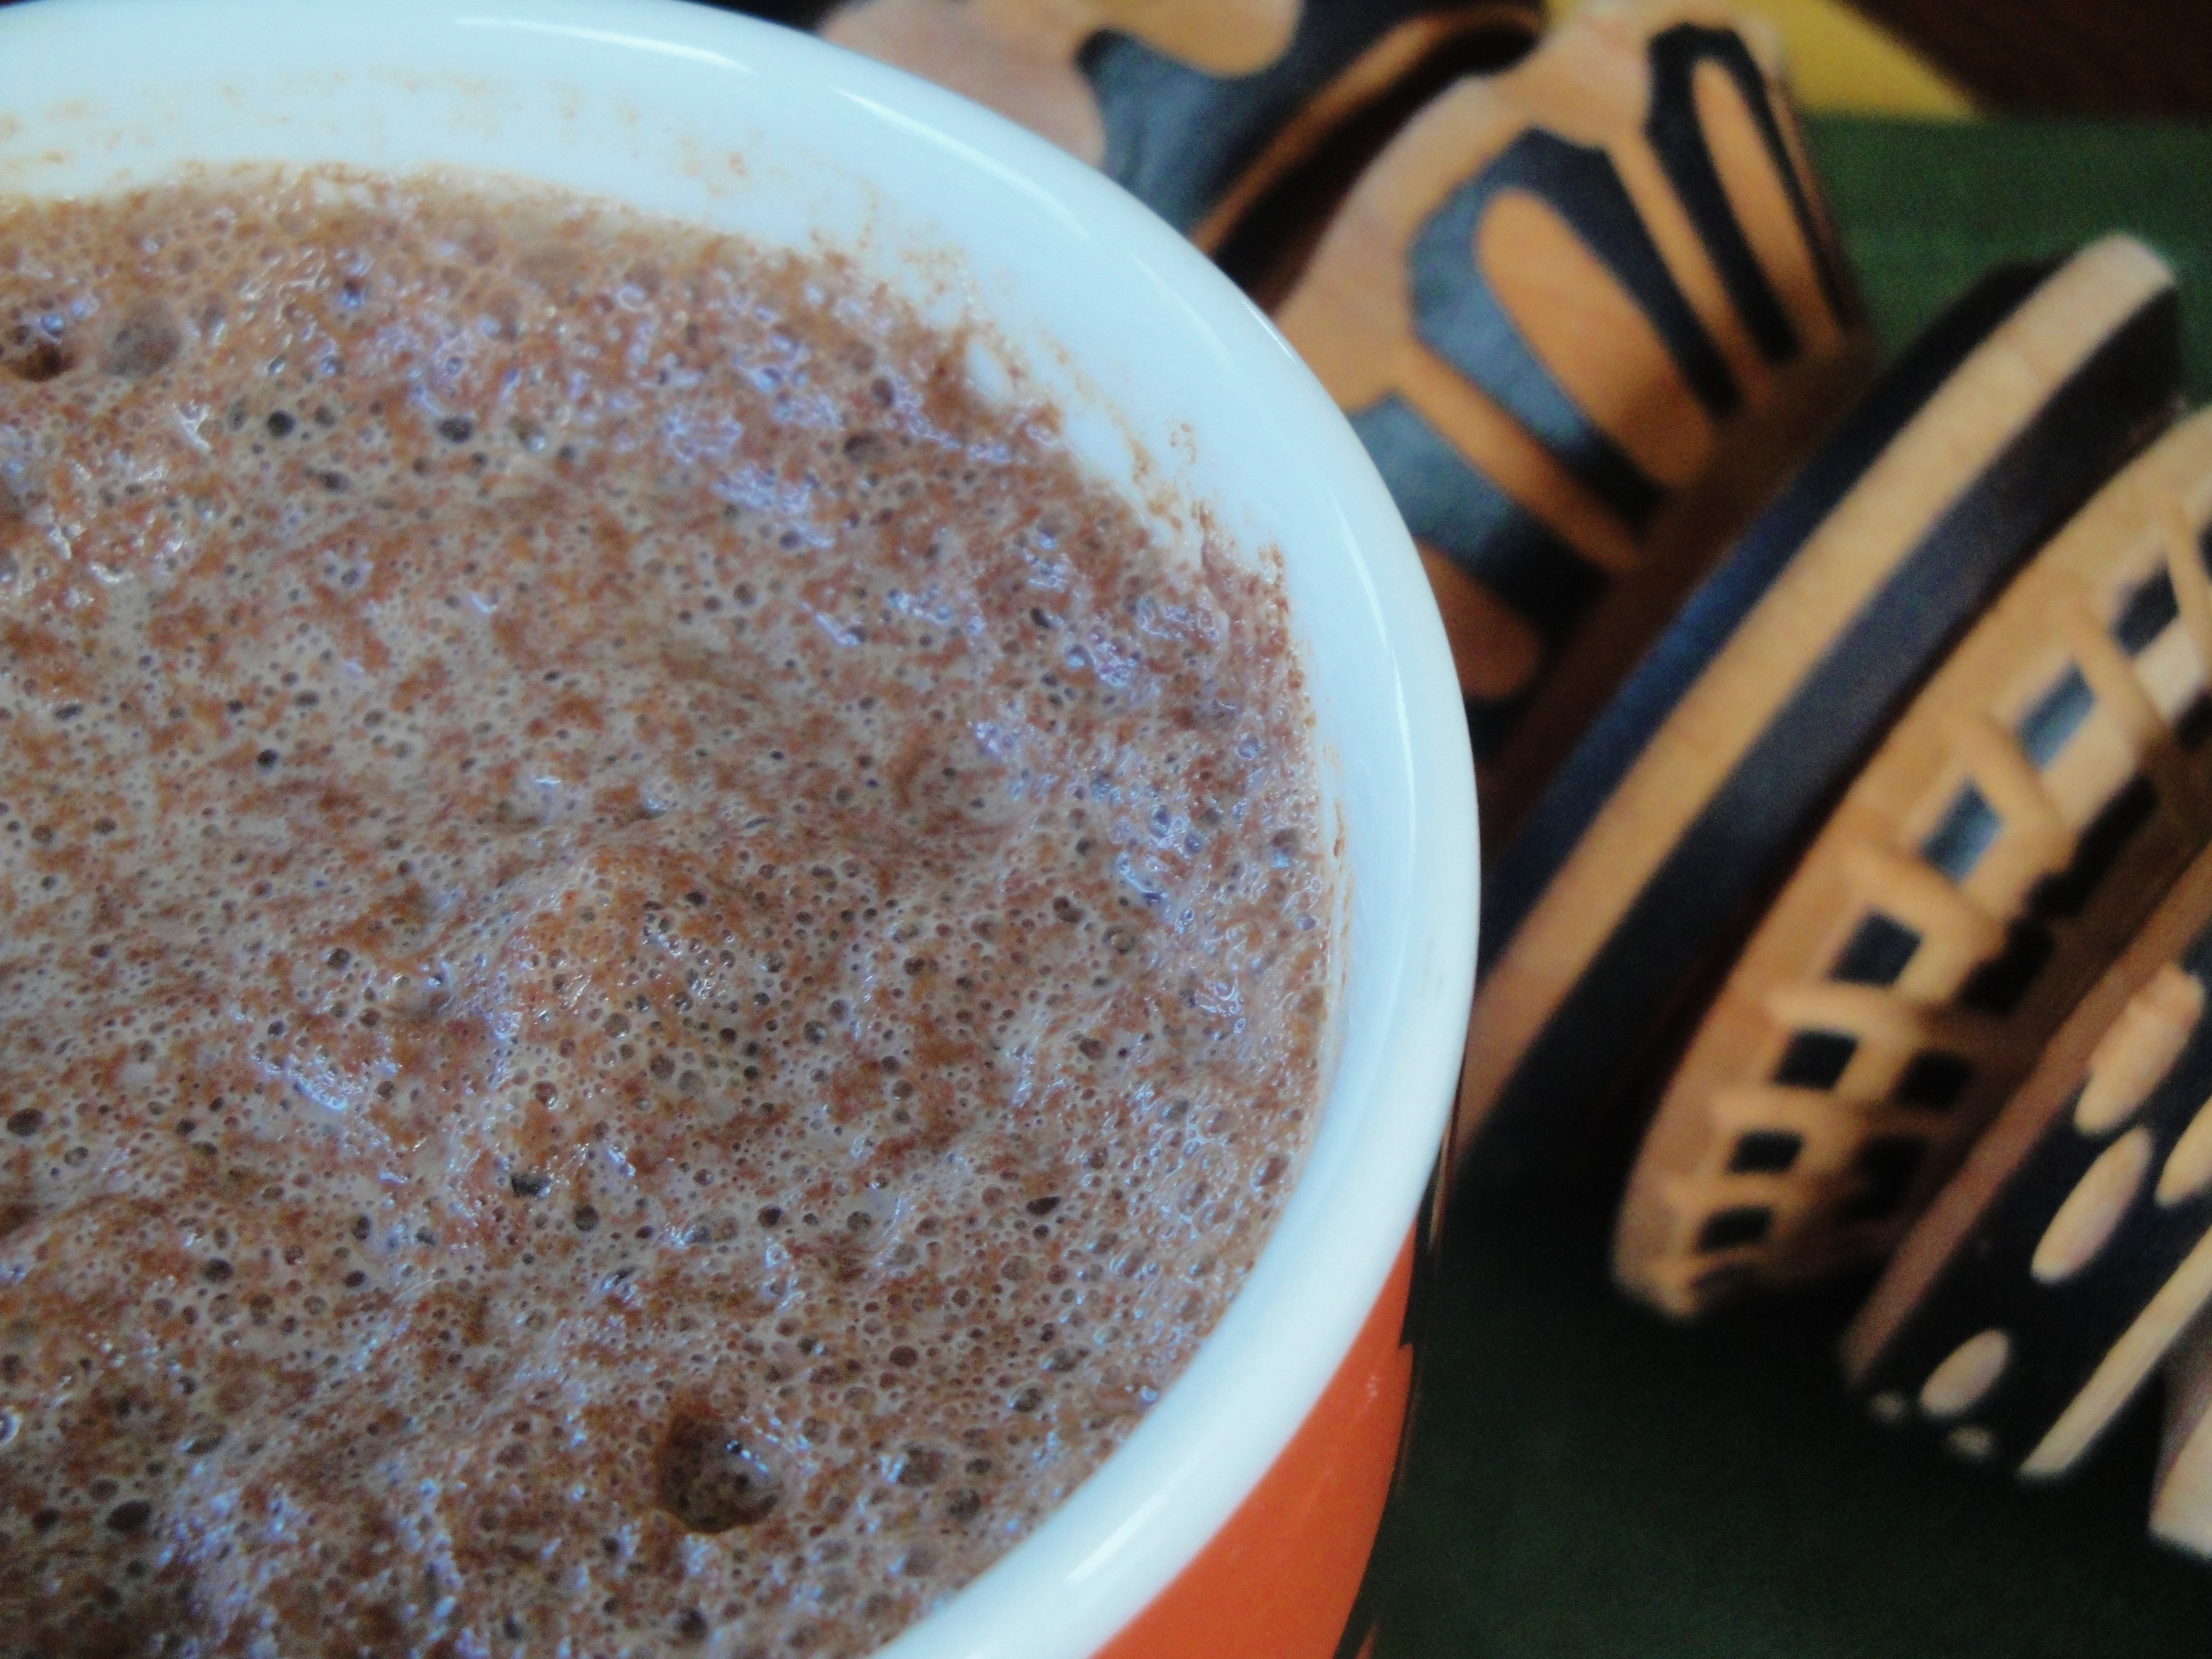 Homemade Mexican Hot Chocolate , made in the Adventure Kitchen in April 2015.